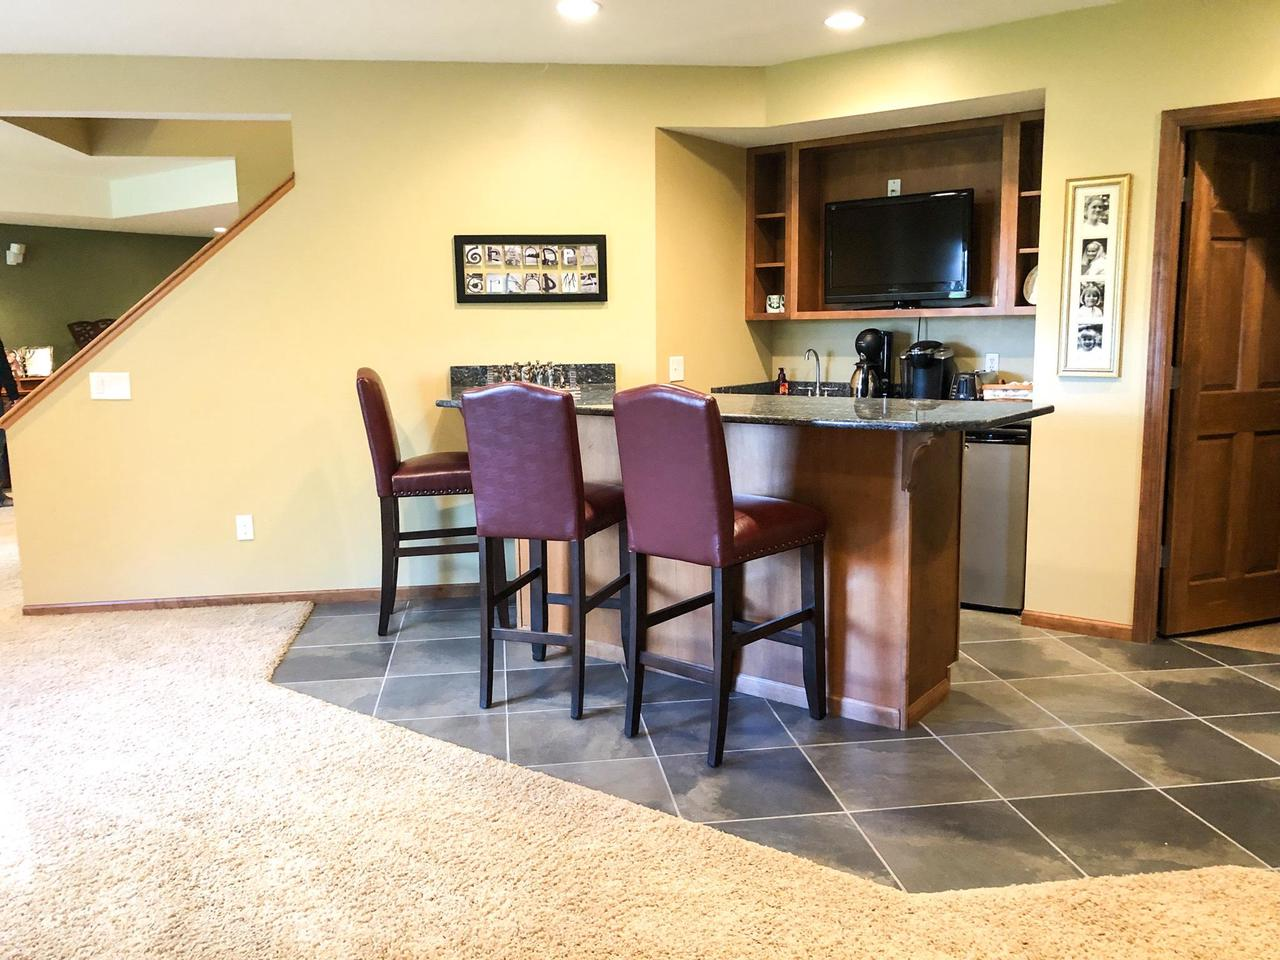 N1604 S Main St, Fort Atkinson, WI 53538